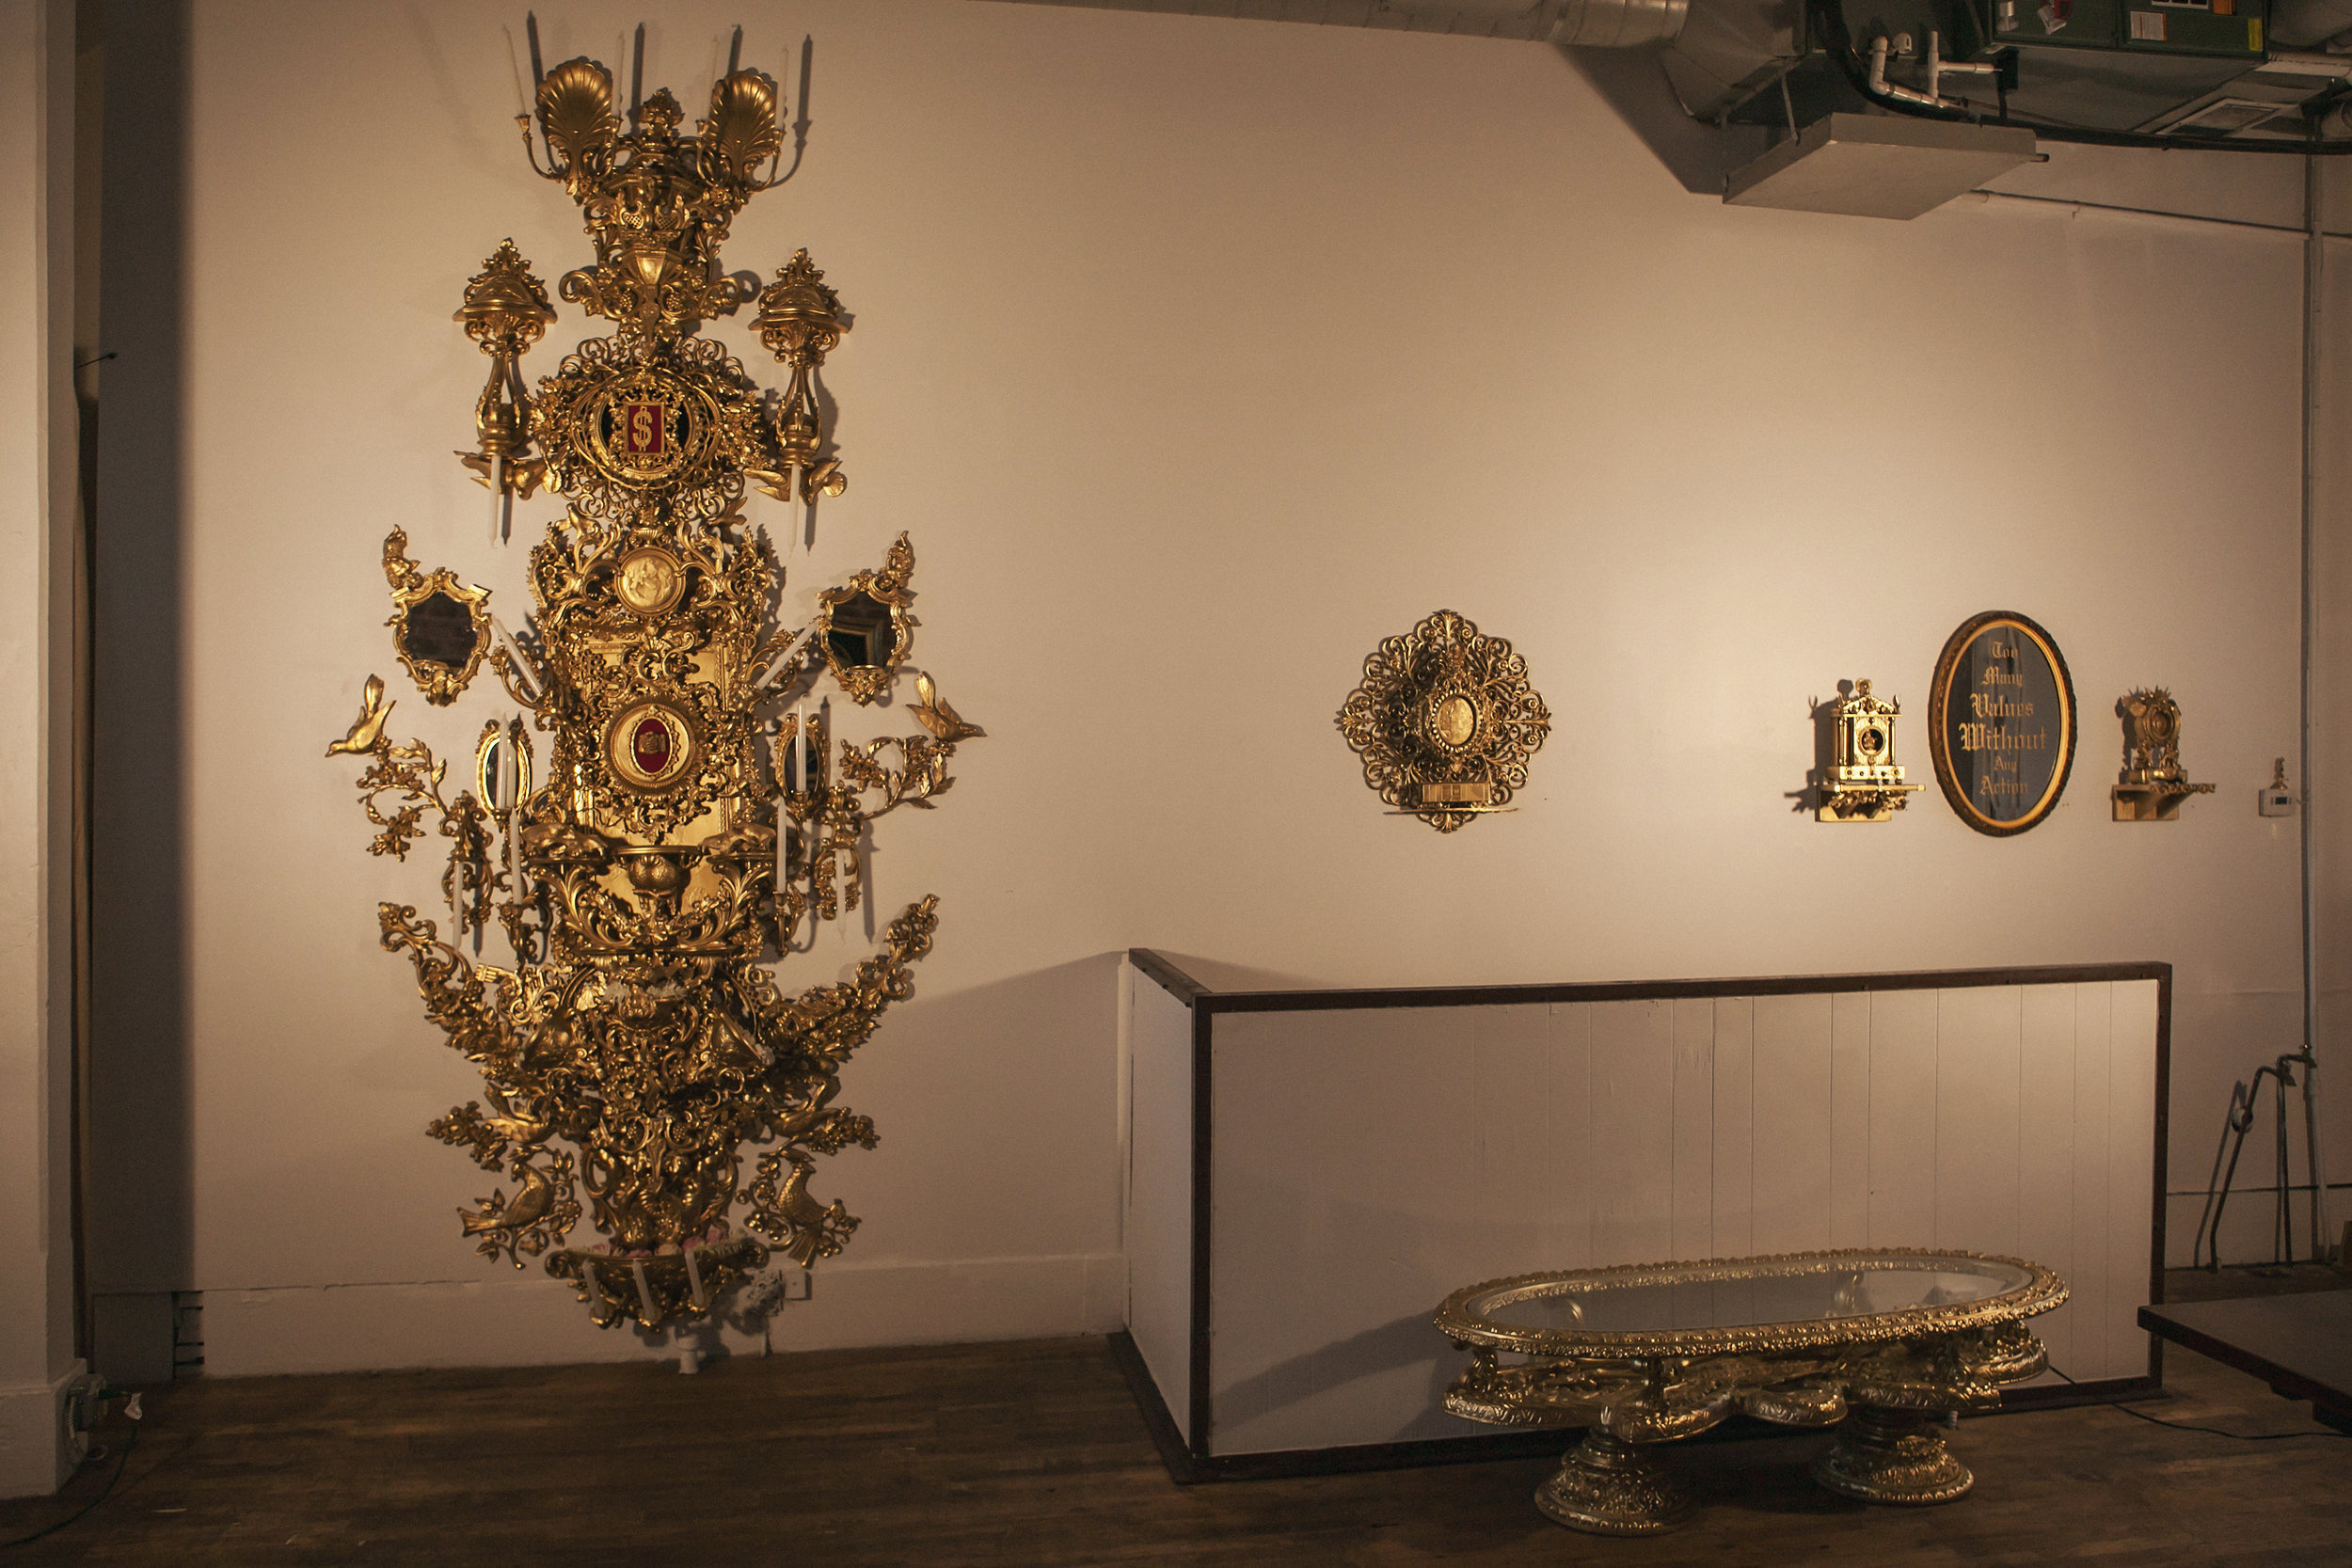 """Gallery view.  """"The Symbolic Collisions of a Tragicomic Character Worth His Weight in Gold"""" (left)  """"People Transport"""" (center)  """"Mini Mantle from North Mexico #1 & #2"""" """"Too Many Values Without Any Action"""" (right)  """"Cartel Victim Catacomb"""" (below)"""